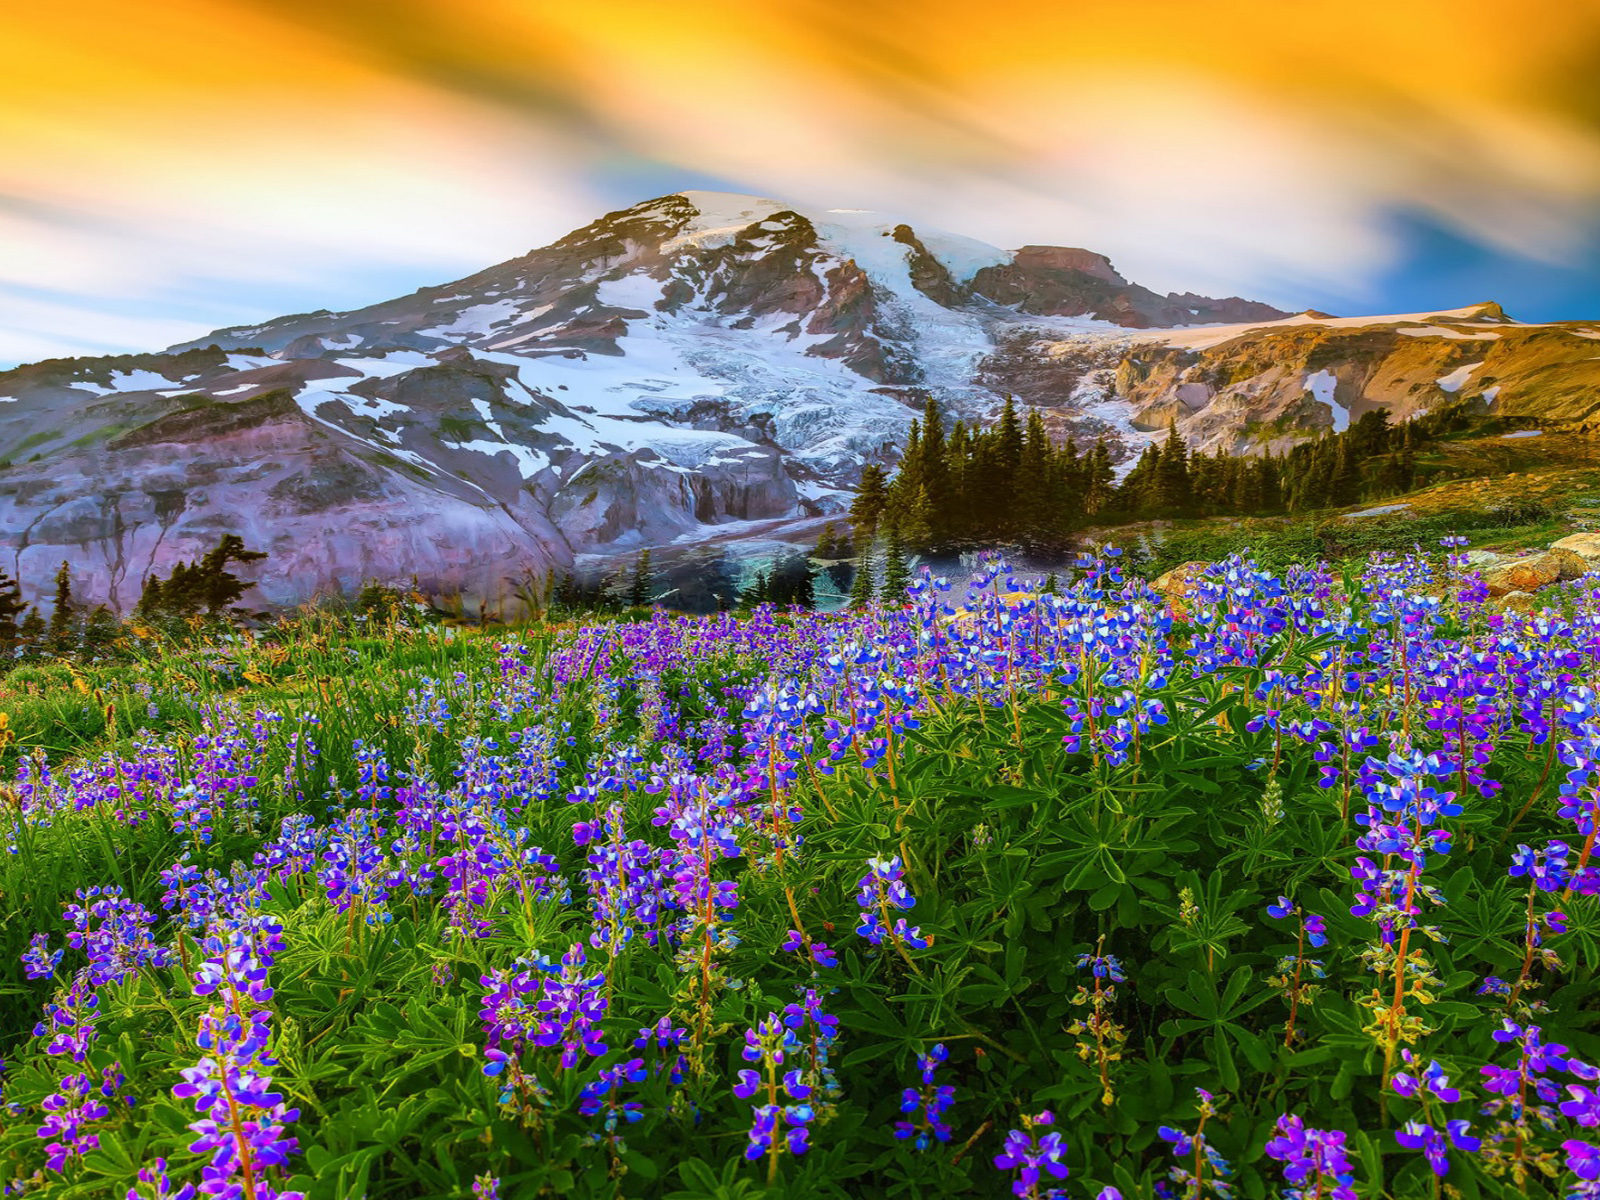 Wallpapers For Desktop Fall Colors Beautiful Spring Landscape Nature Flowers Mountain Snow